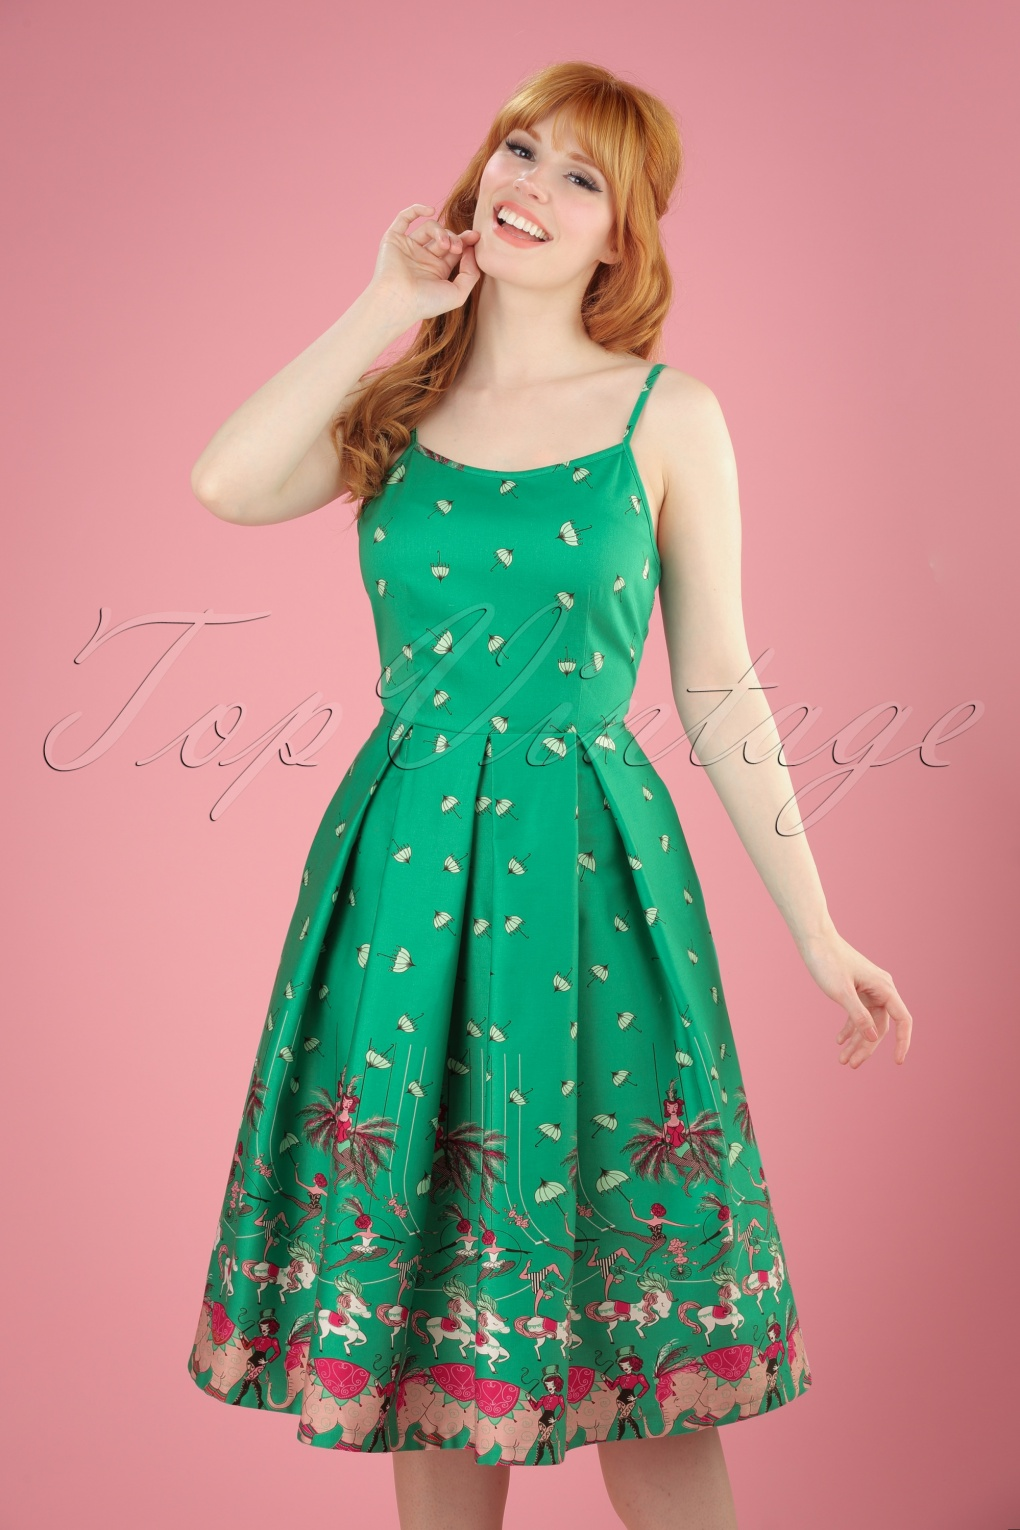 1940s Pinup Dresses for Sale 50s Evelyn Circus Swing Dress in Green £45.29 AT vintagedancer.com